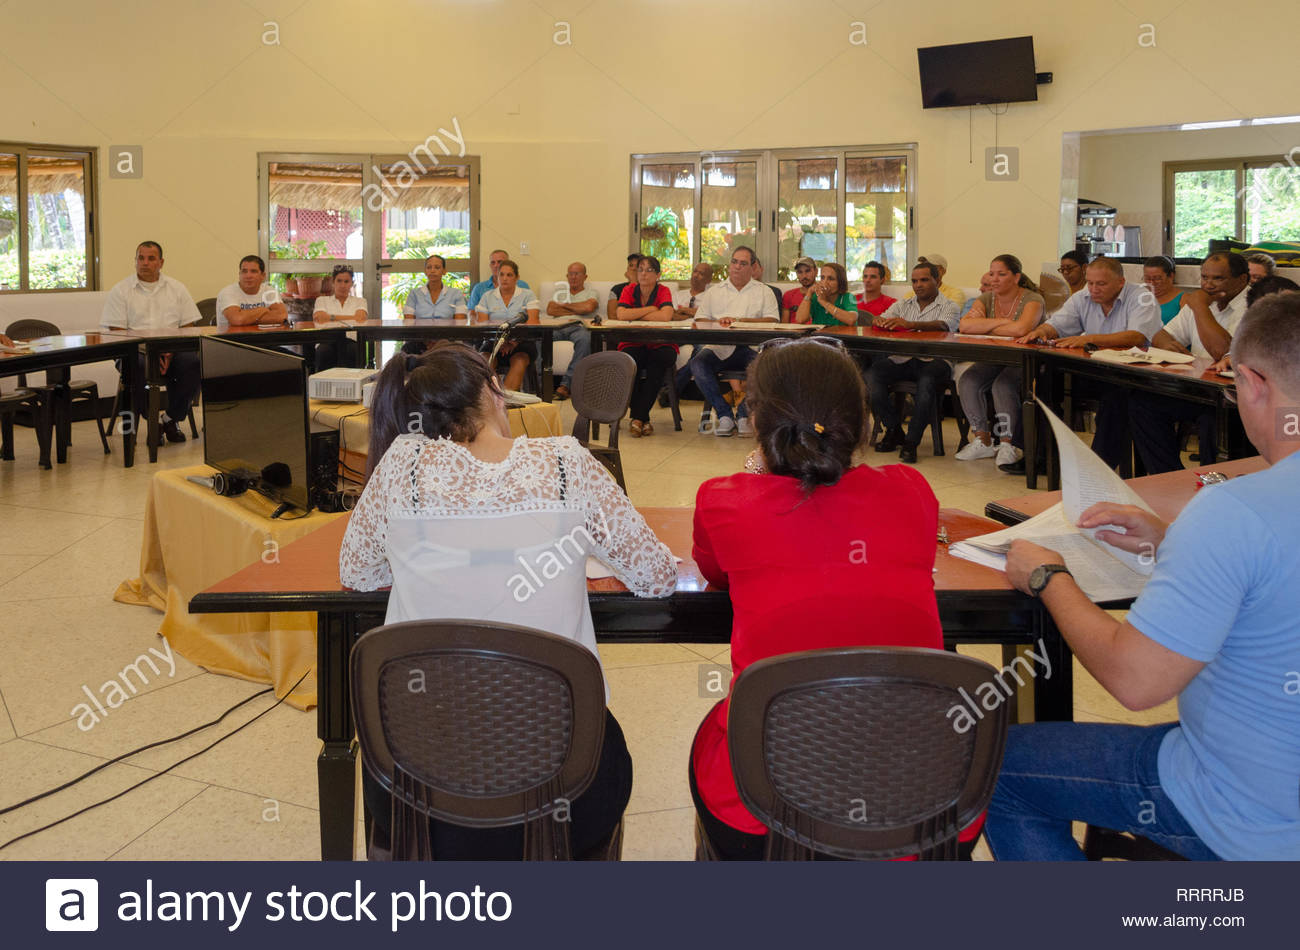 Santa Clara, Cuba-September 12,2018: Workers of Villa La Granjita Hotel discuss the new proposed constitution. The meeting happens in the conference r - Stock Image